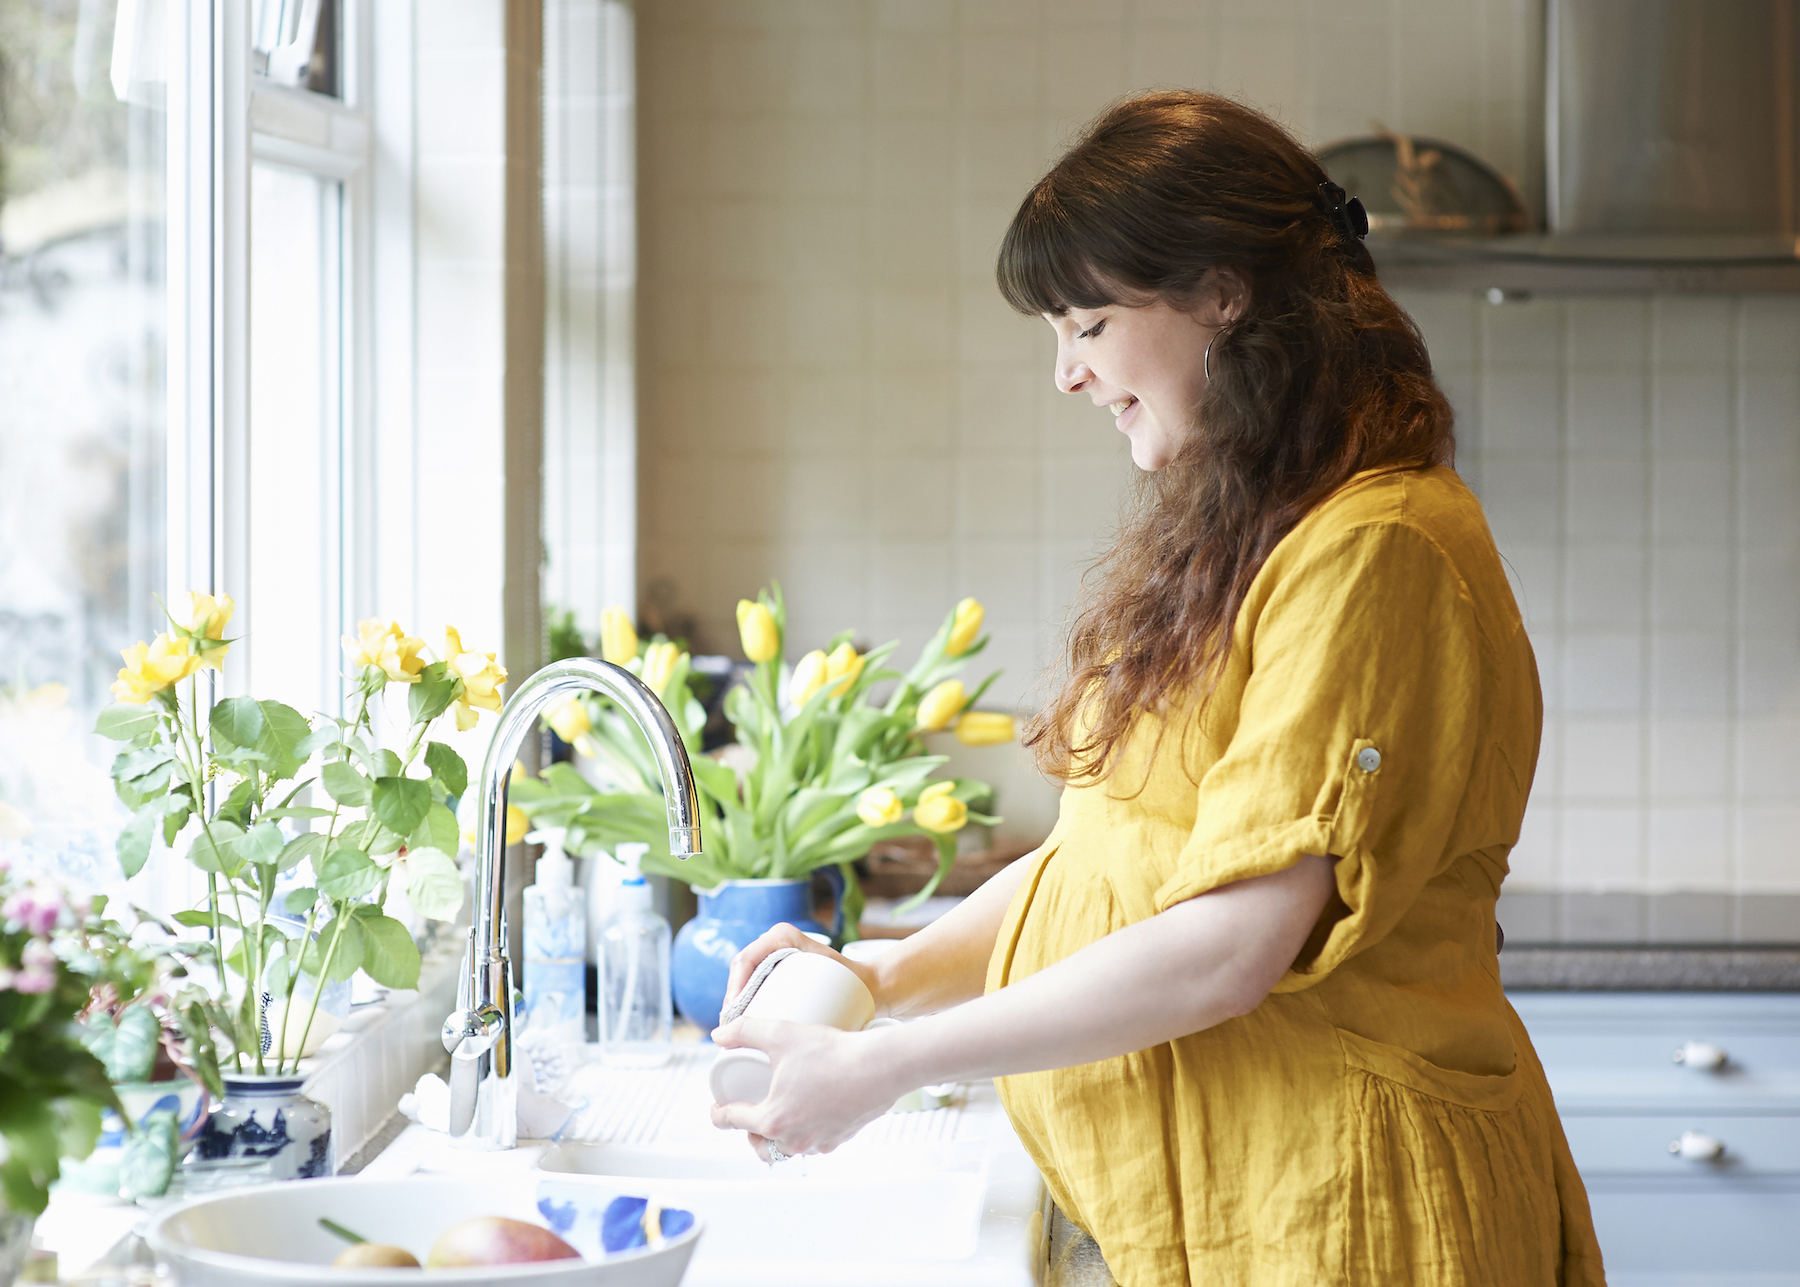 Pregnant Woman Washing Dishes in kitchen